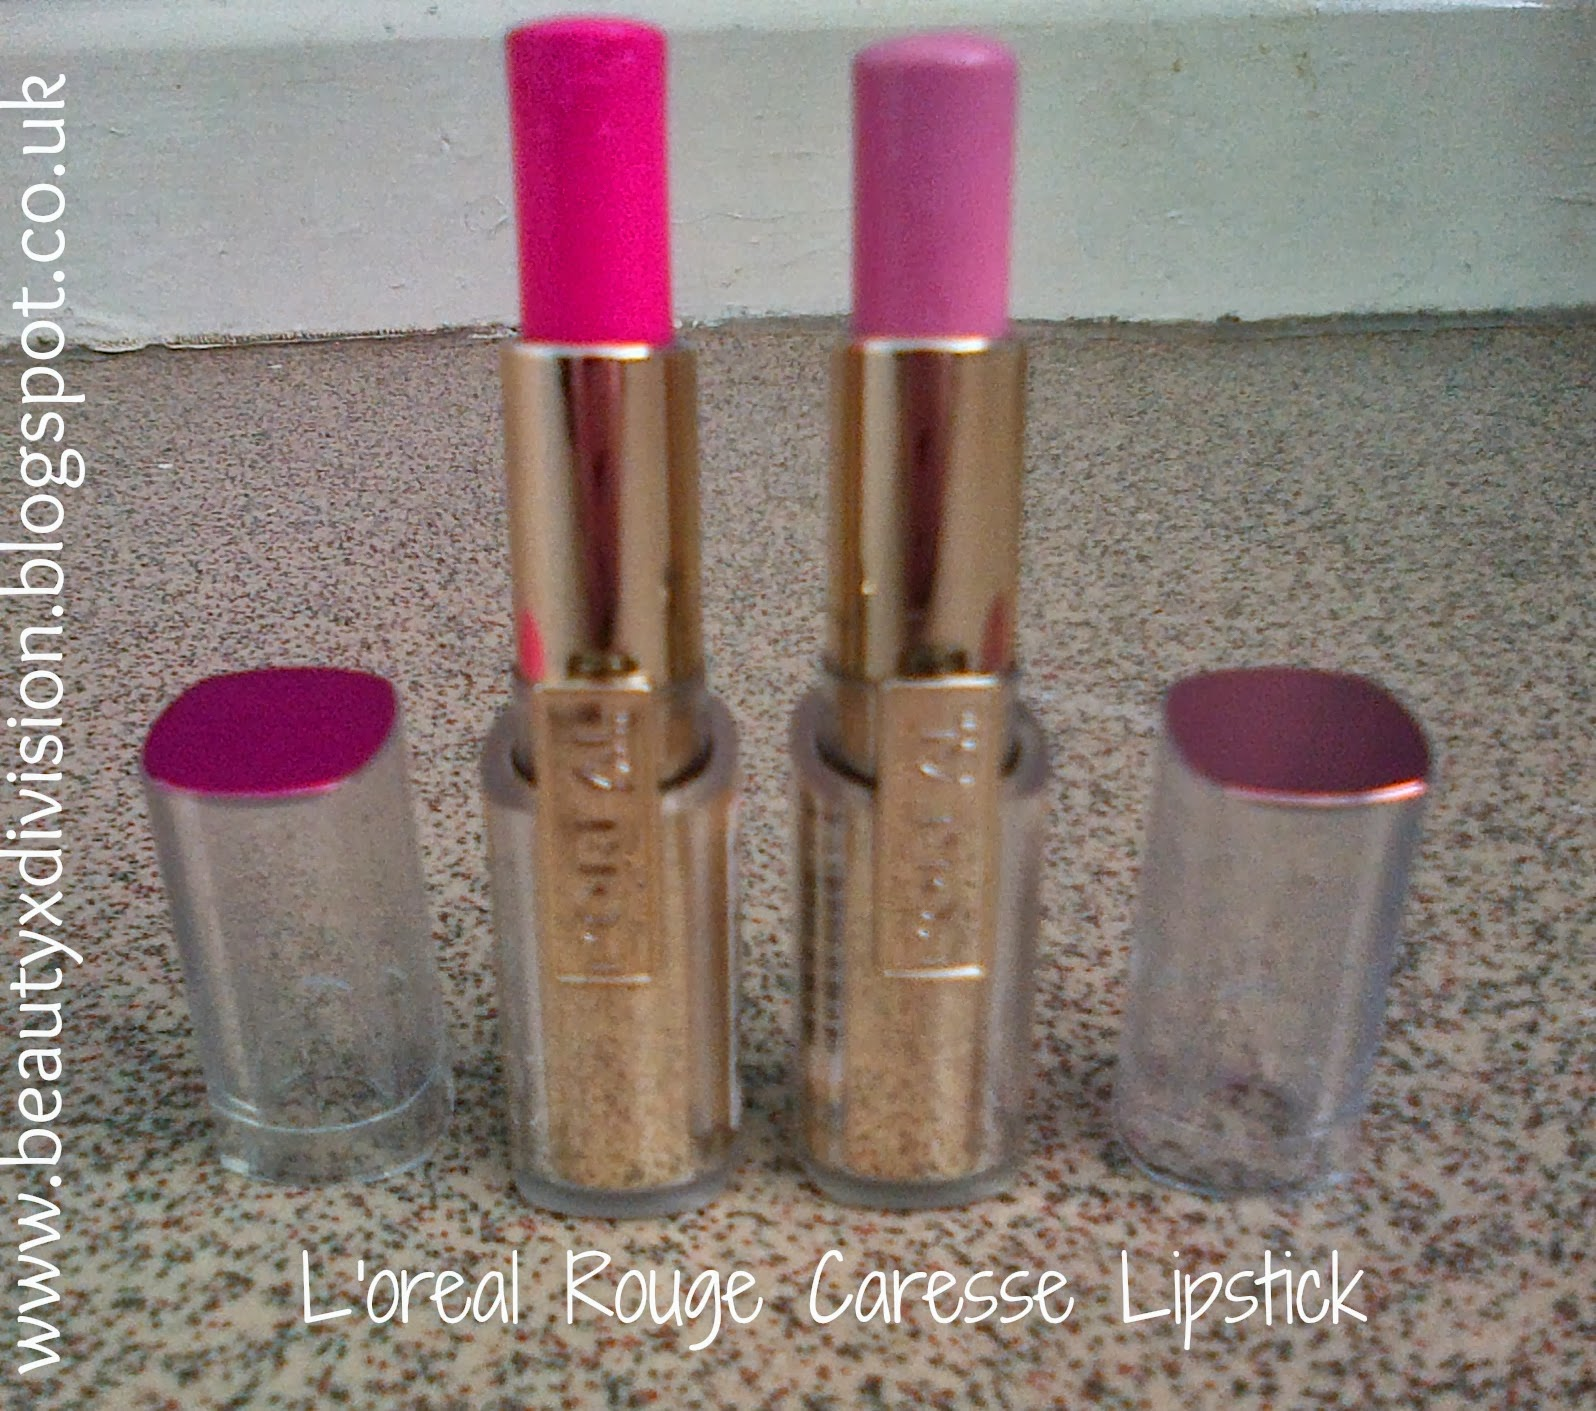 L'oreal Rouge Caresse Lipsticks